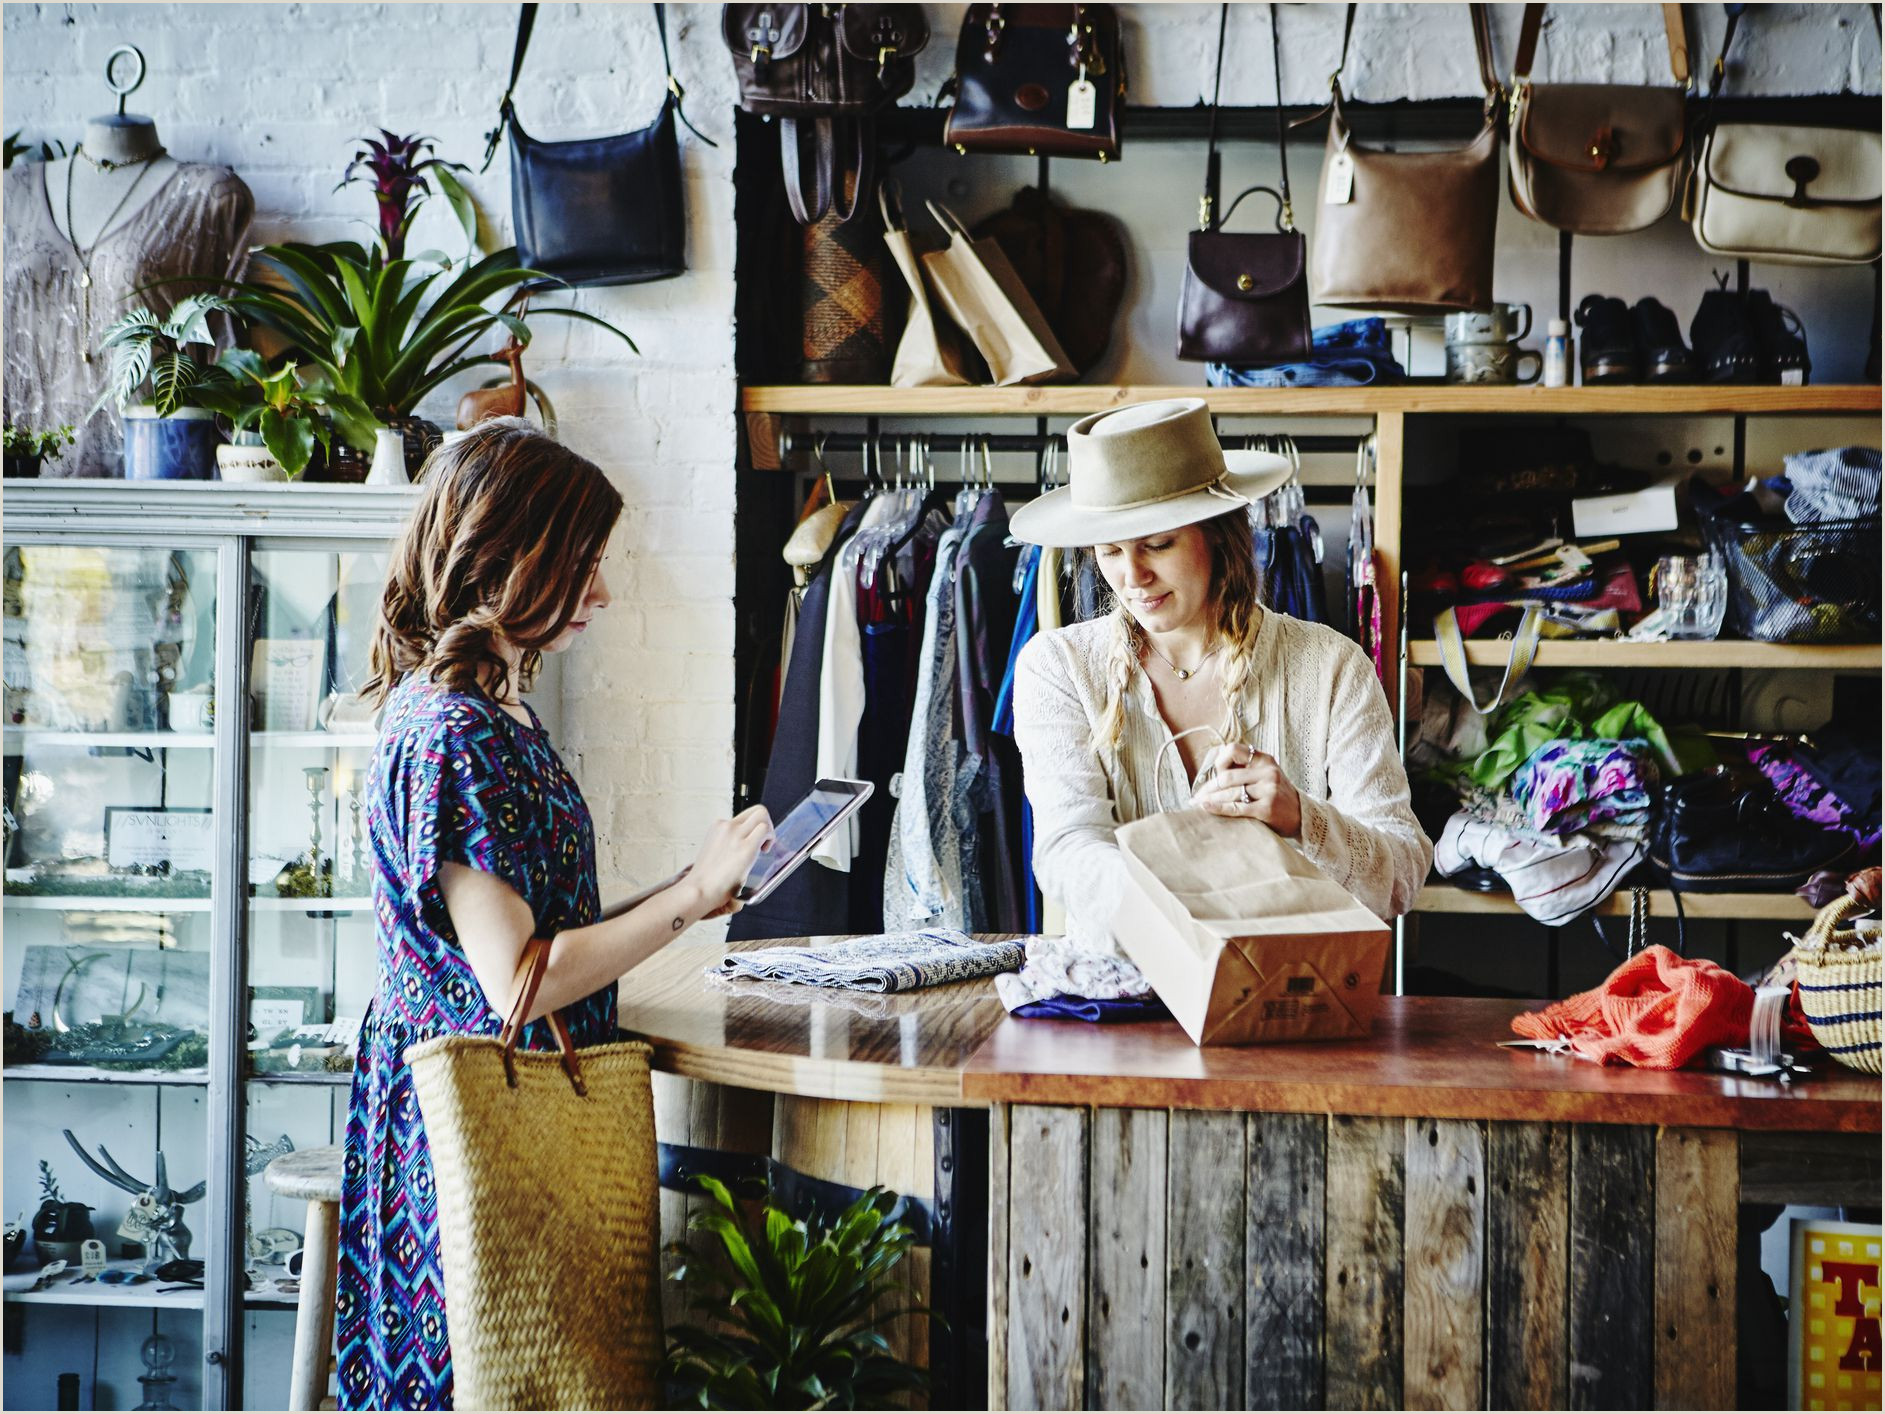 Retail Recovery to Get Your Store Ready for Customers